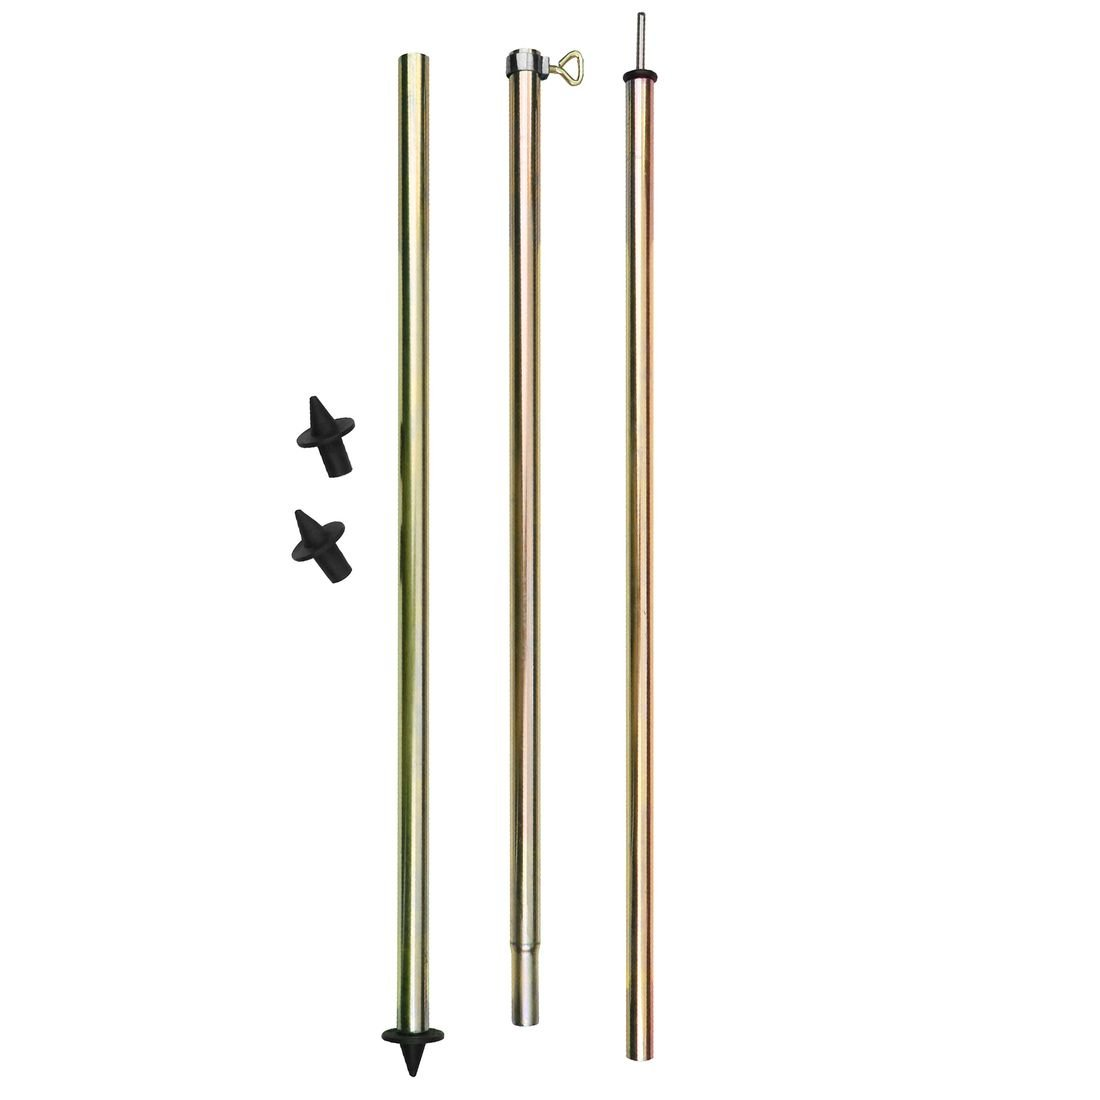 10T Outdoor Equipment TA Pole 200 Tienda Barra, Oro, 140 – 200 cm 140 - 200 cm 10TA5|#10T Outdoor Equipment 4260181763545